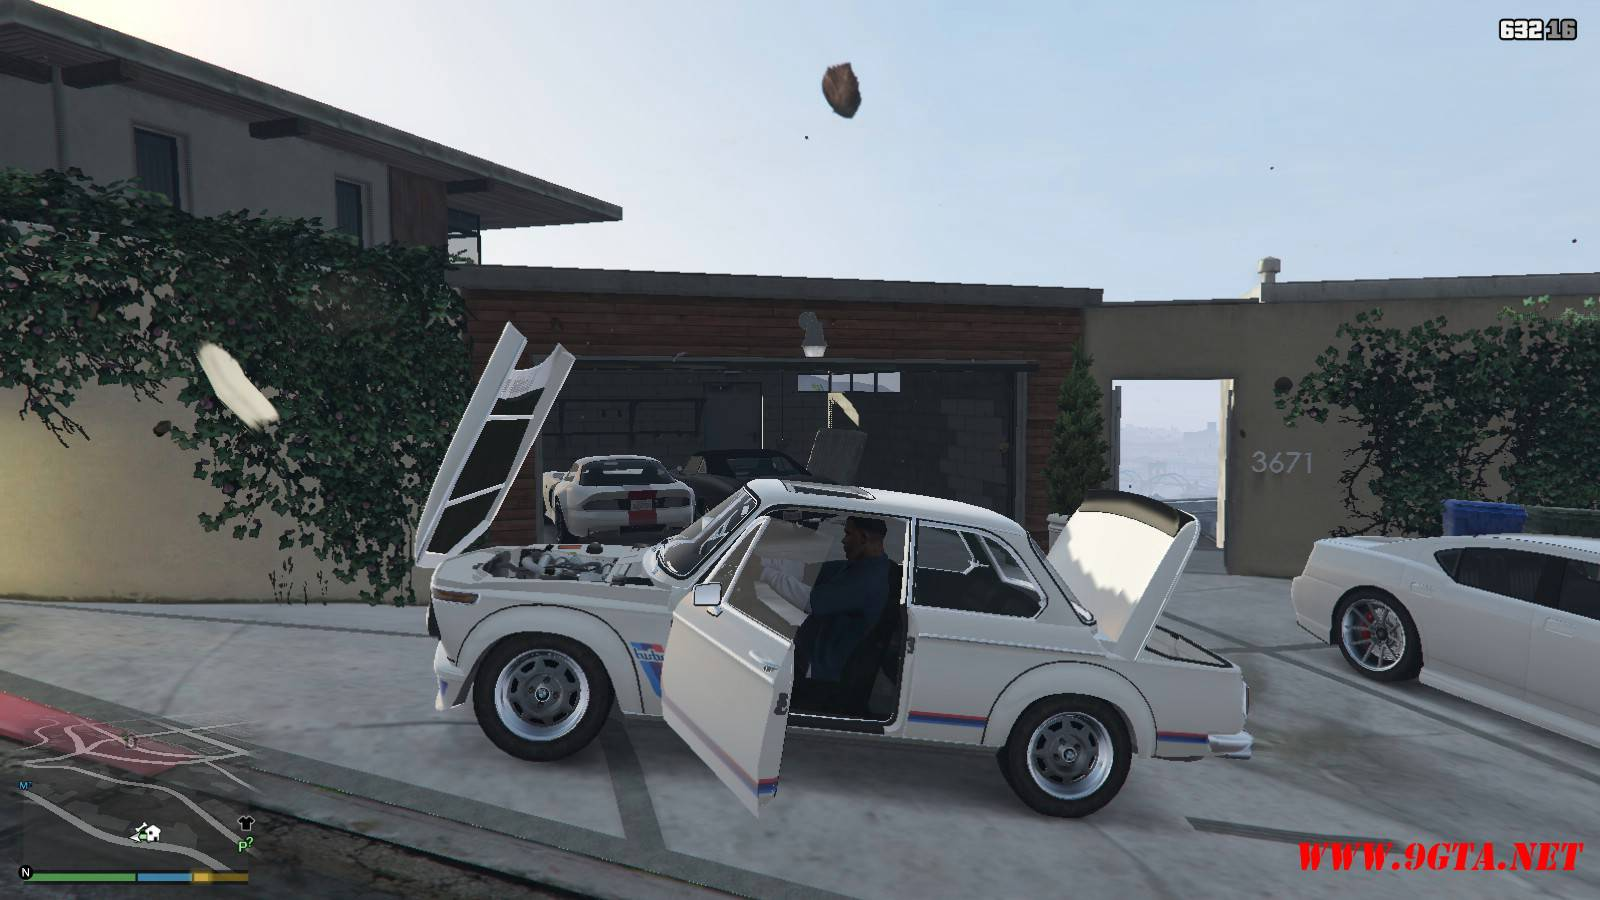 2002 BMW Turbo Mod For GTA5 (15)